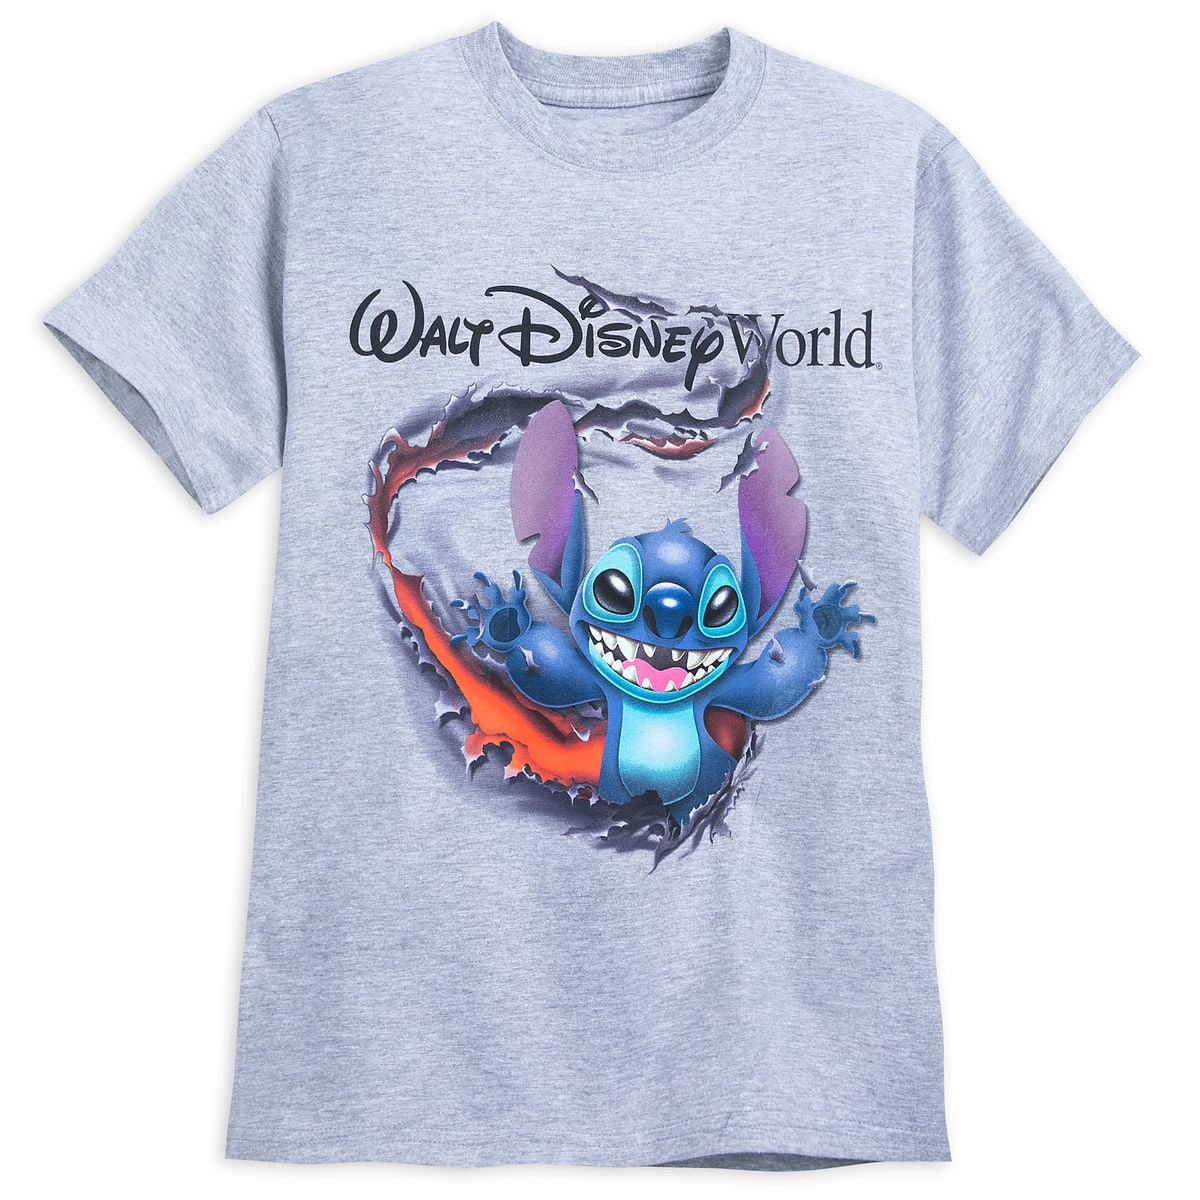 58645ddbc35 Product Image of Stitch Burst Out T-Shirt for Kids - Walt Disney World